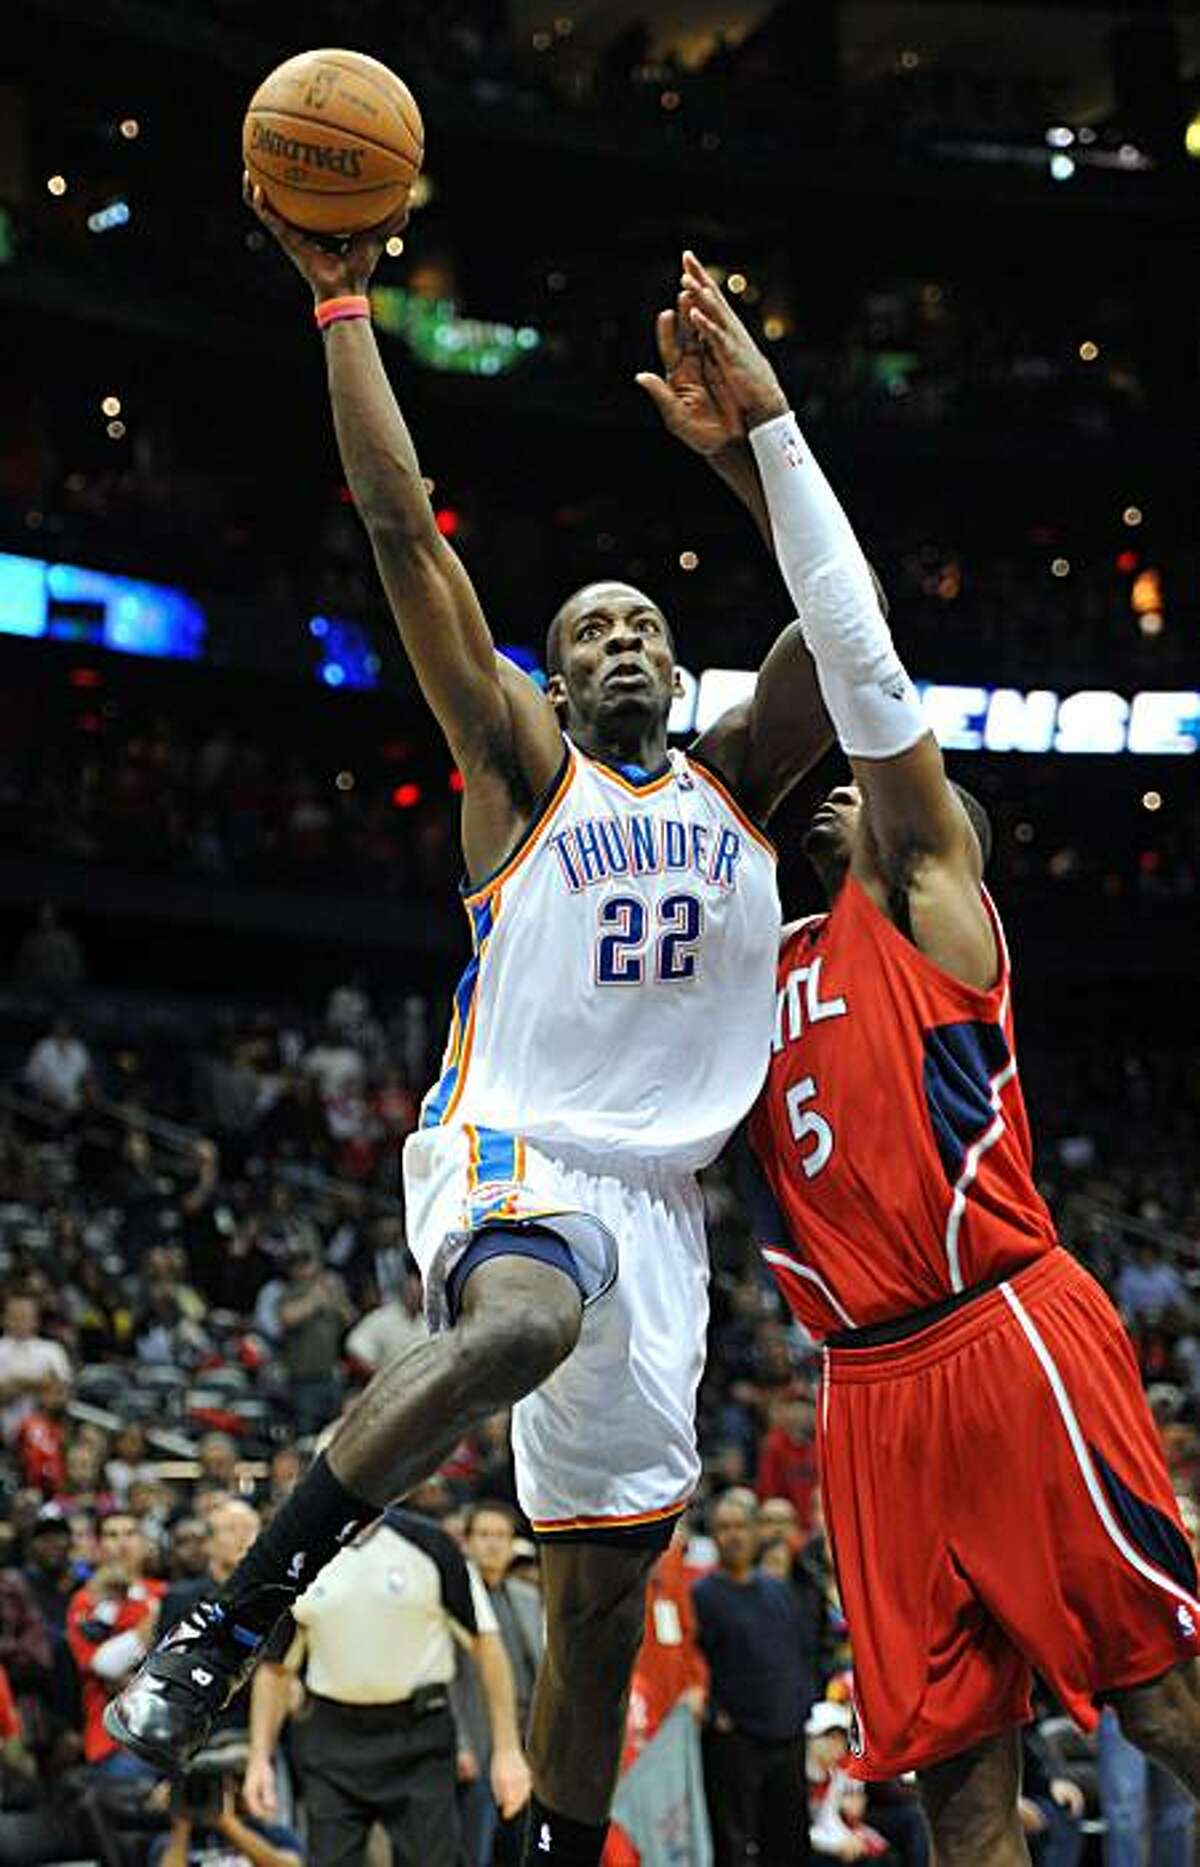 Oklahoma City Thunder's Jeff Green (22) goes to the basket against Atlanta Hawks' Josh Smith (5) with just under 15 seconds left in the game to score in the fourth quarter of an NBA basketball game in Atlanta, Monday, Jan. 18, 2010. The Thunder won 94-91.